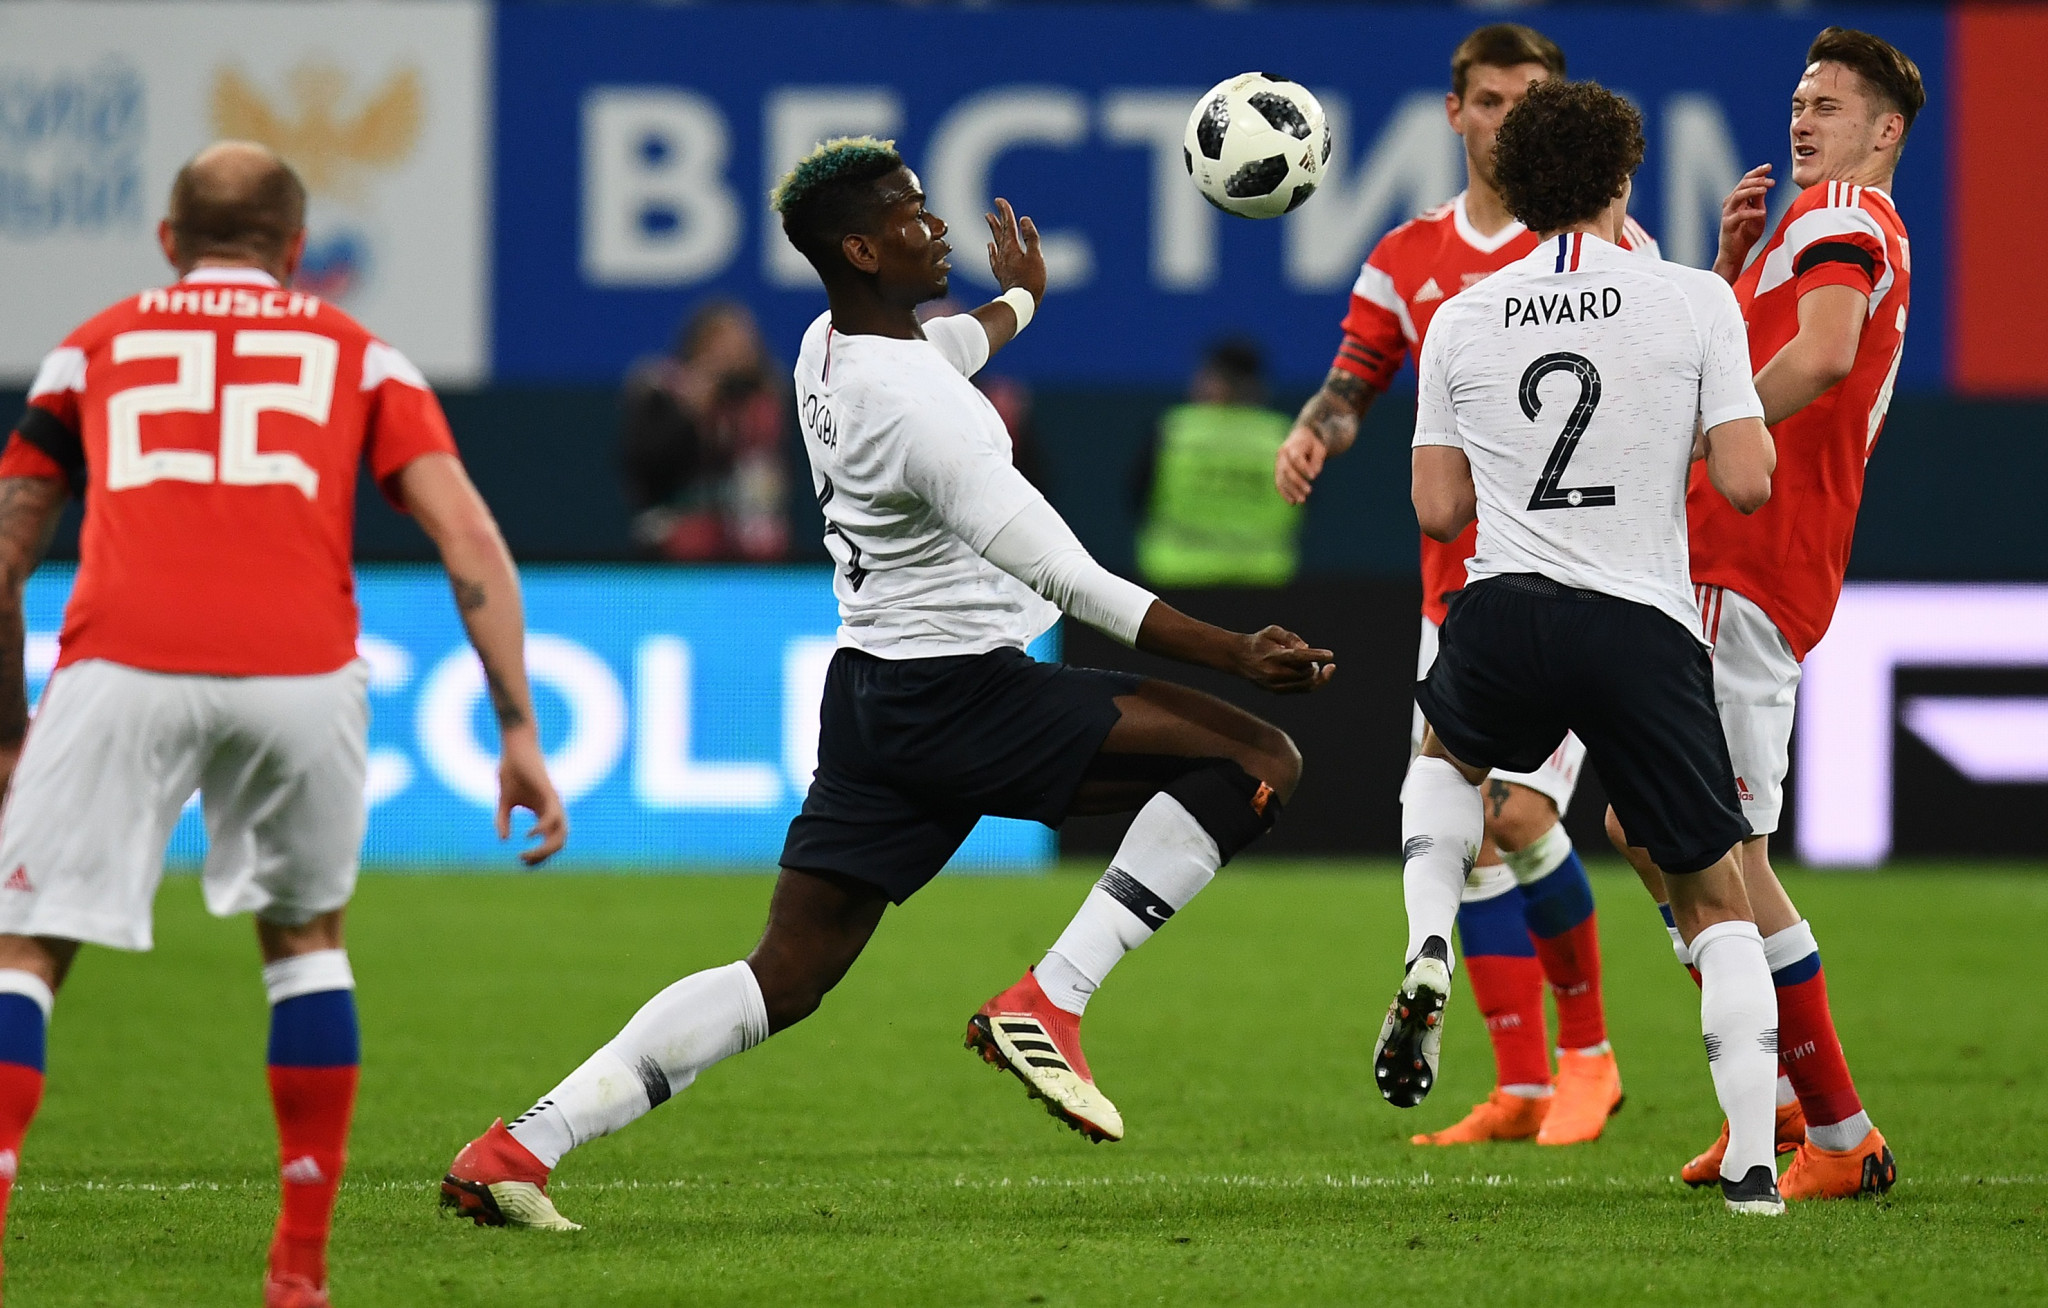 Paul Pogba was among those subjected to monkey chants from sections of the Russian fans at the match ©Getty Images